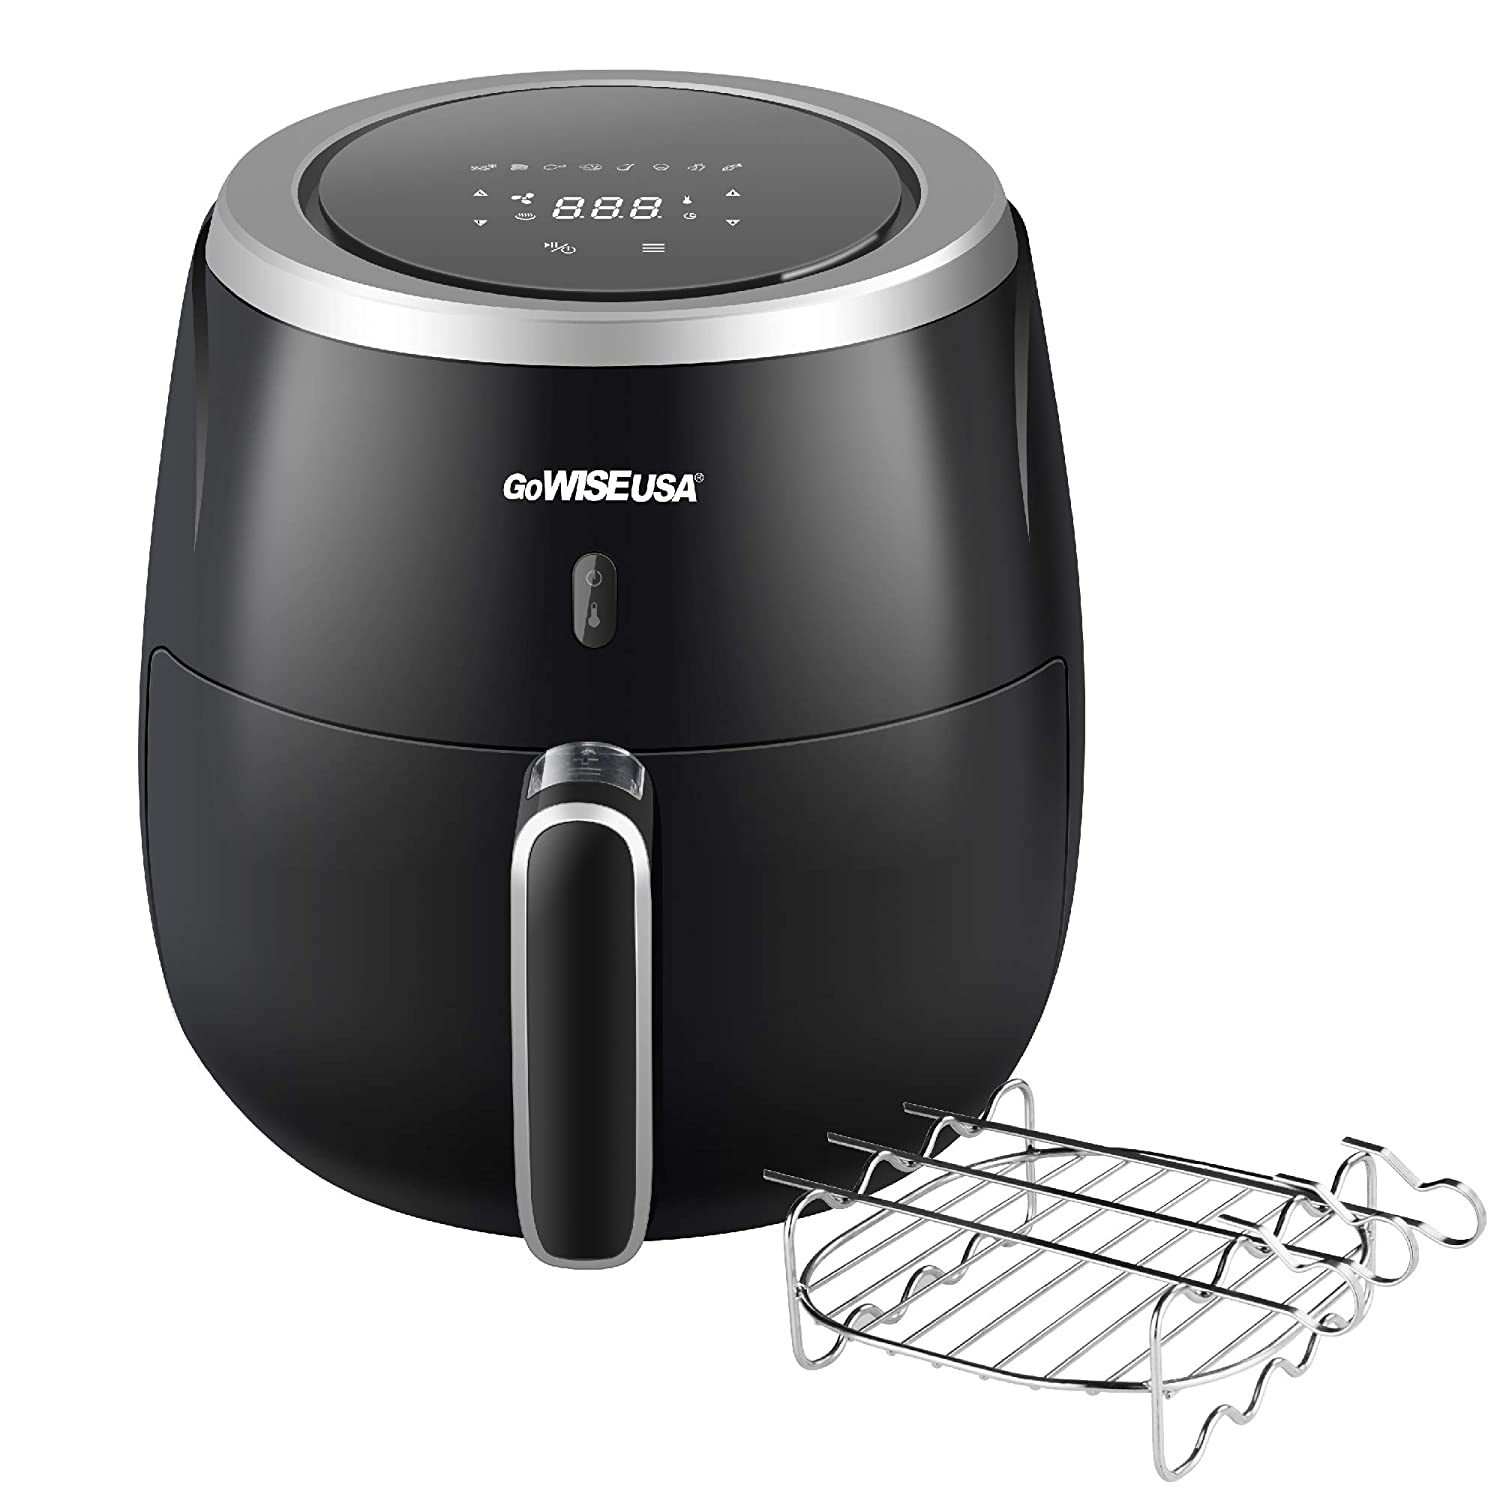 GoWISE USA 5.3-Quart Air Fryer with Kabob Rack, 8 Cooking Presets + 50 Recipes (Black)